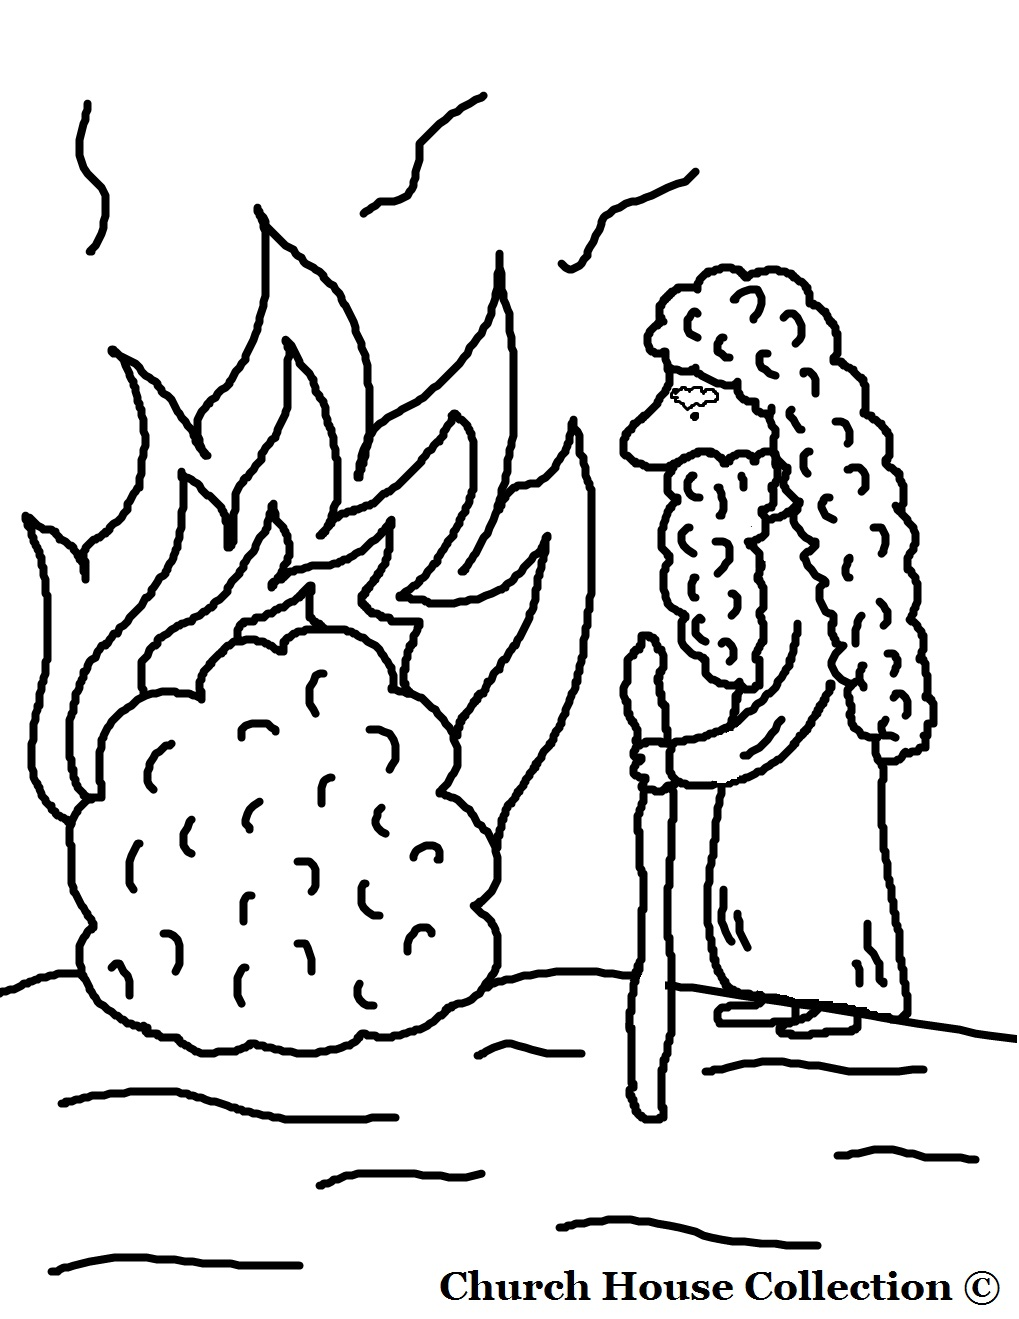 Coloring pages moses parts the red sea - Coloring Pages Moses Parts The Red Sea Moses And The Burning Bush Coloring Page Without